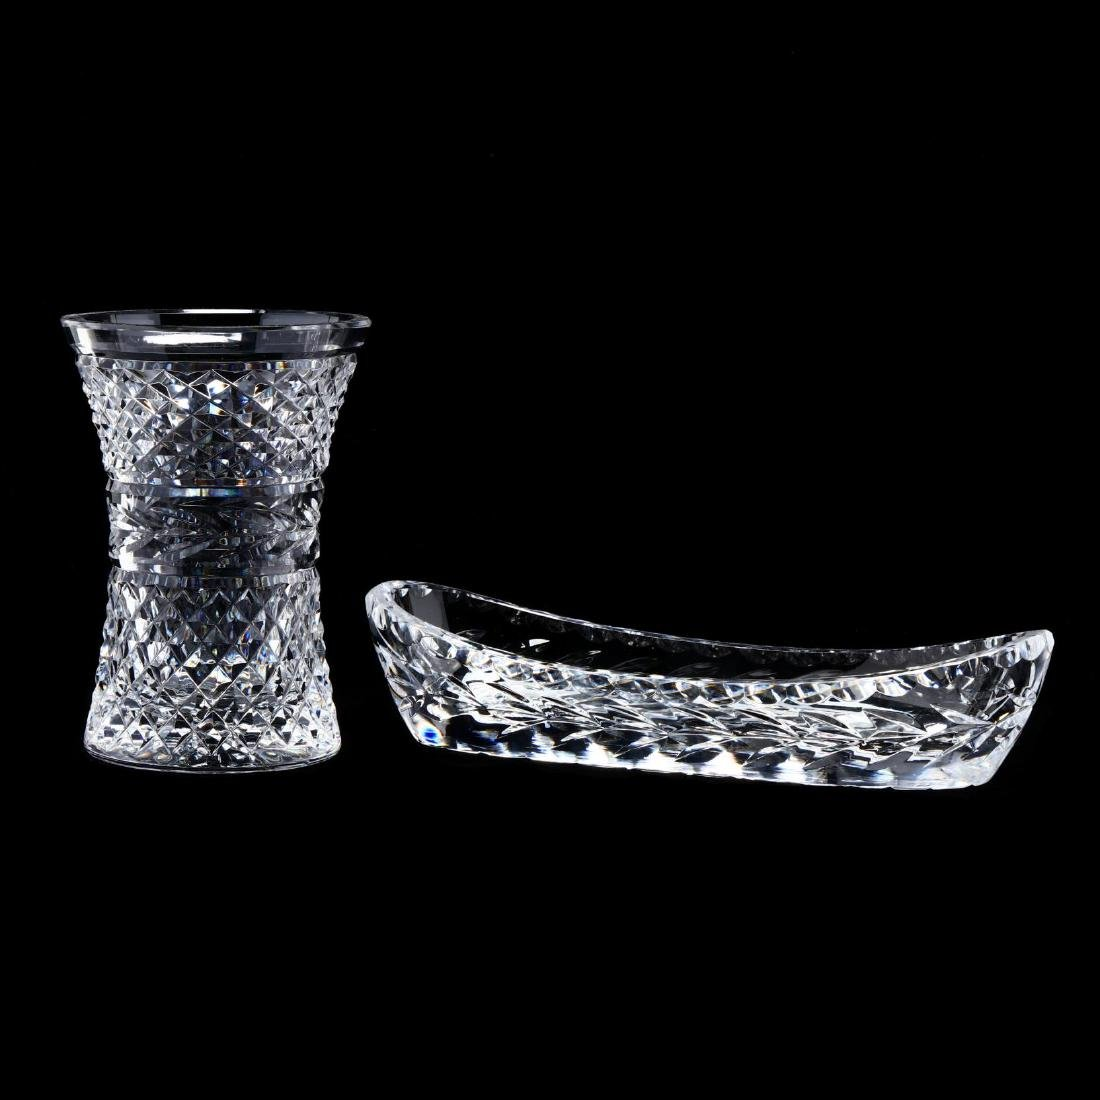 Two Waterford Crystal Table Accessories - 2